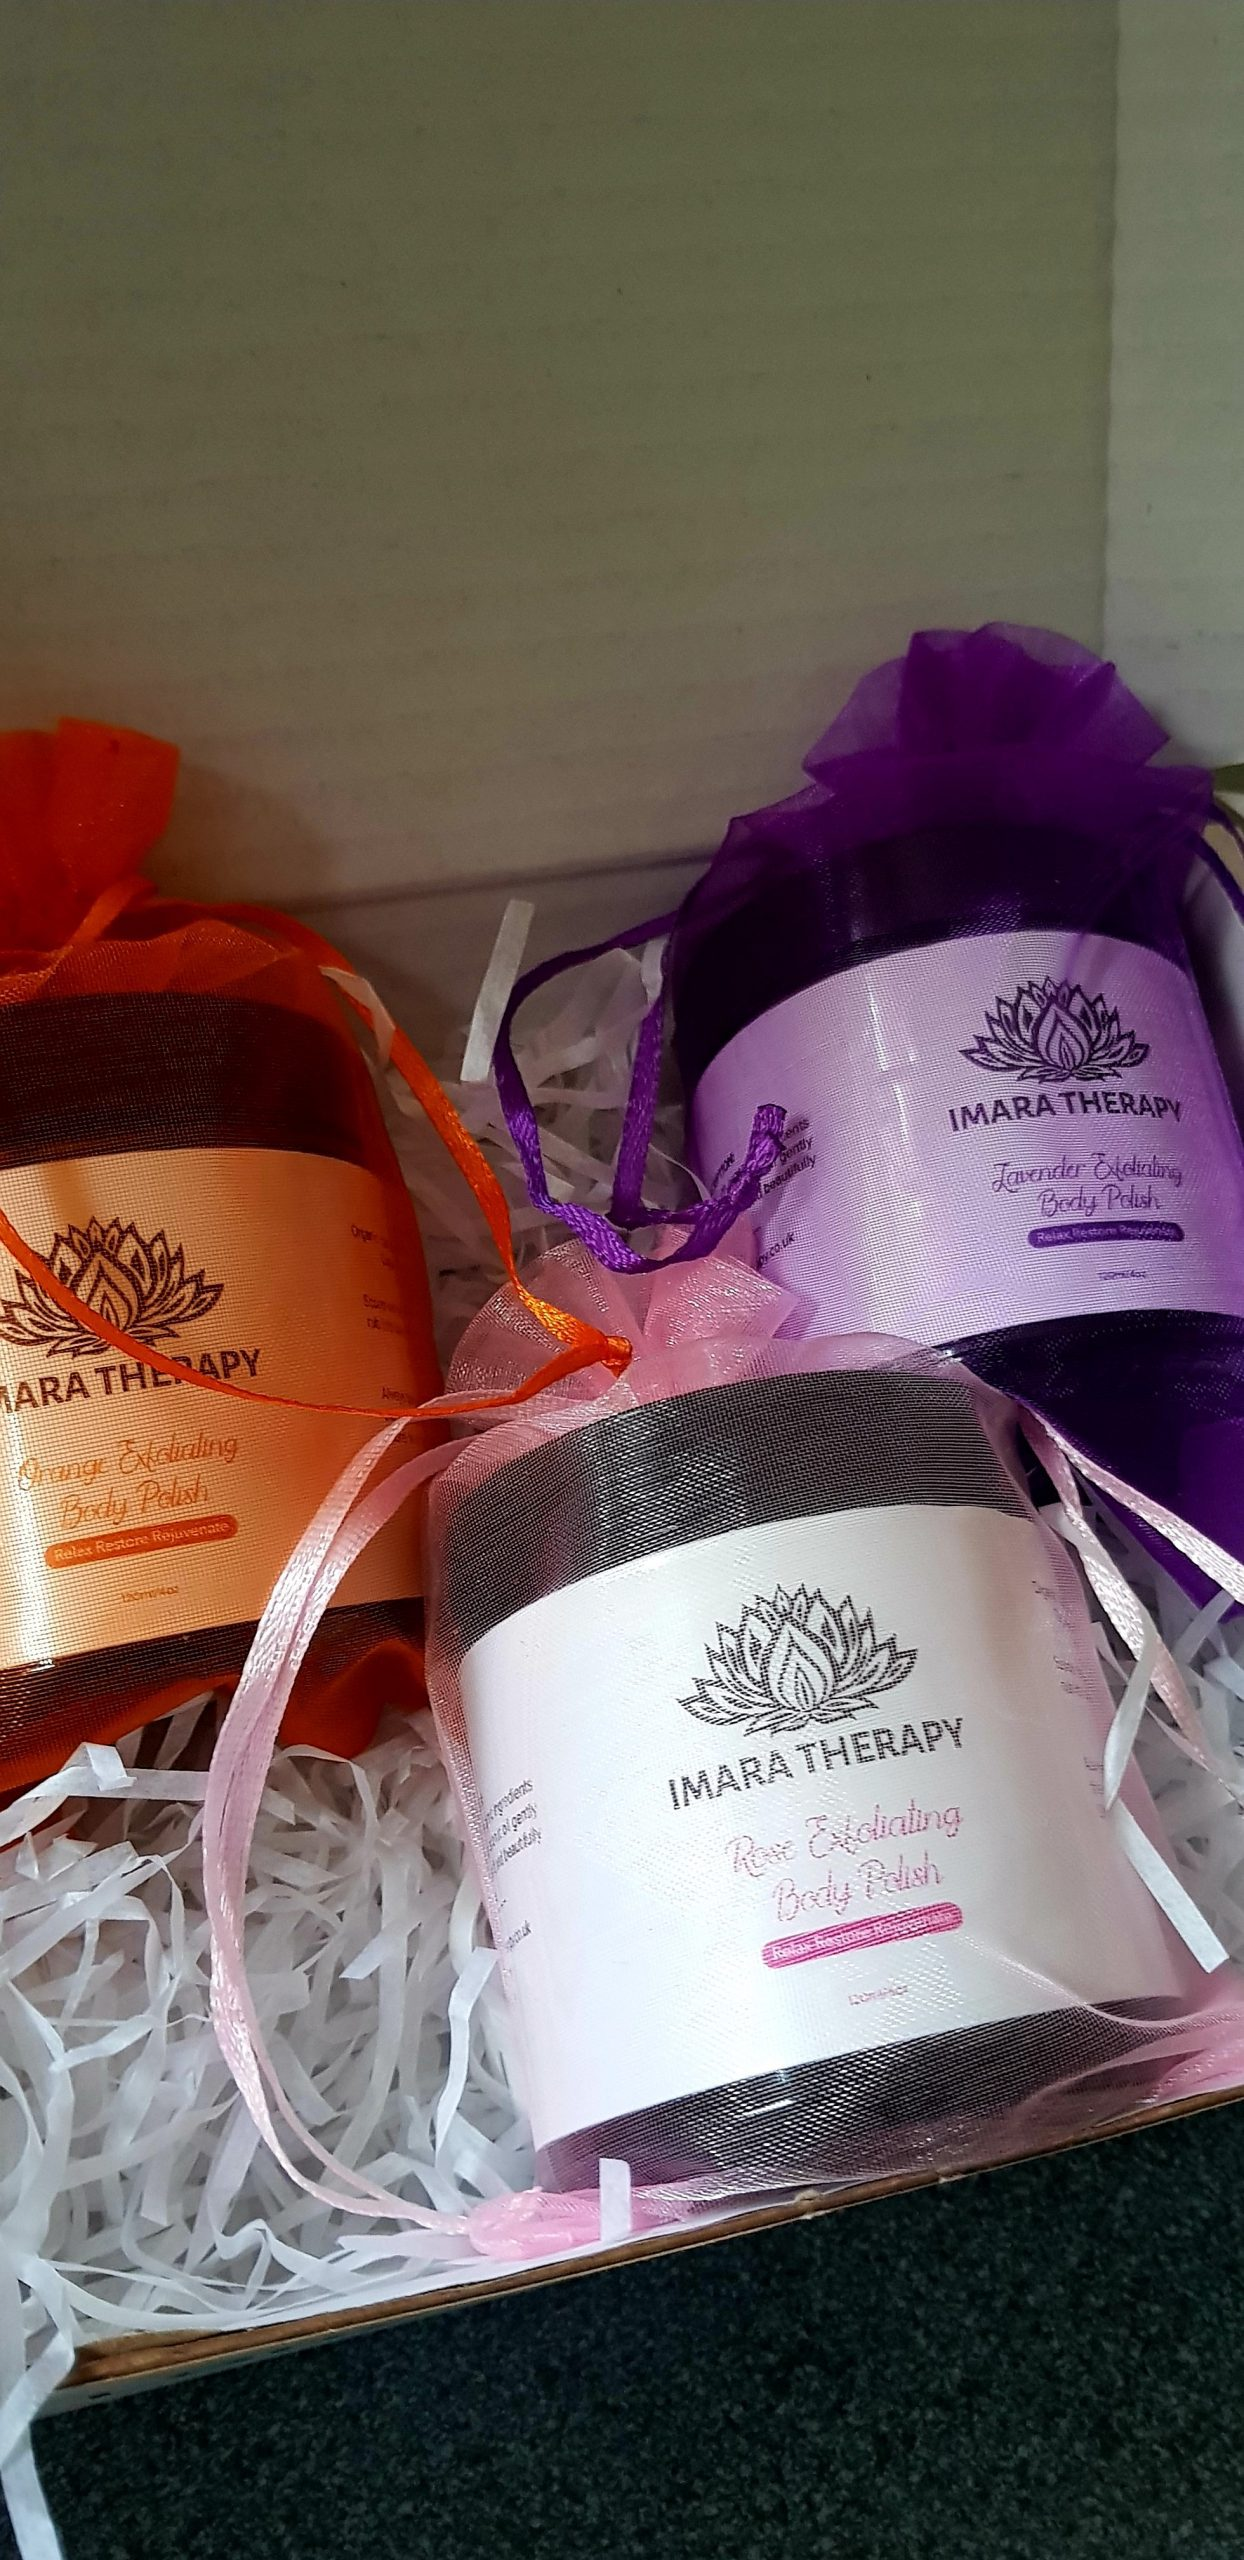 body polish gift sets, black-owned business christmas gift set, health and beauty sets by black-owned businesses, support black-owned businesses